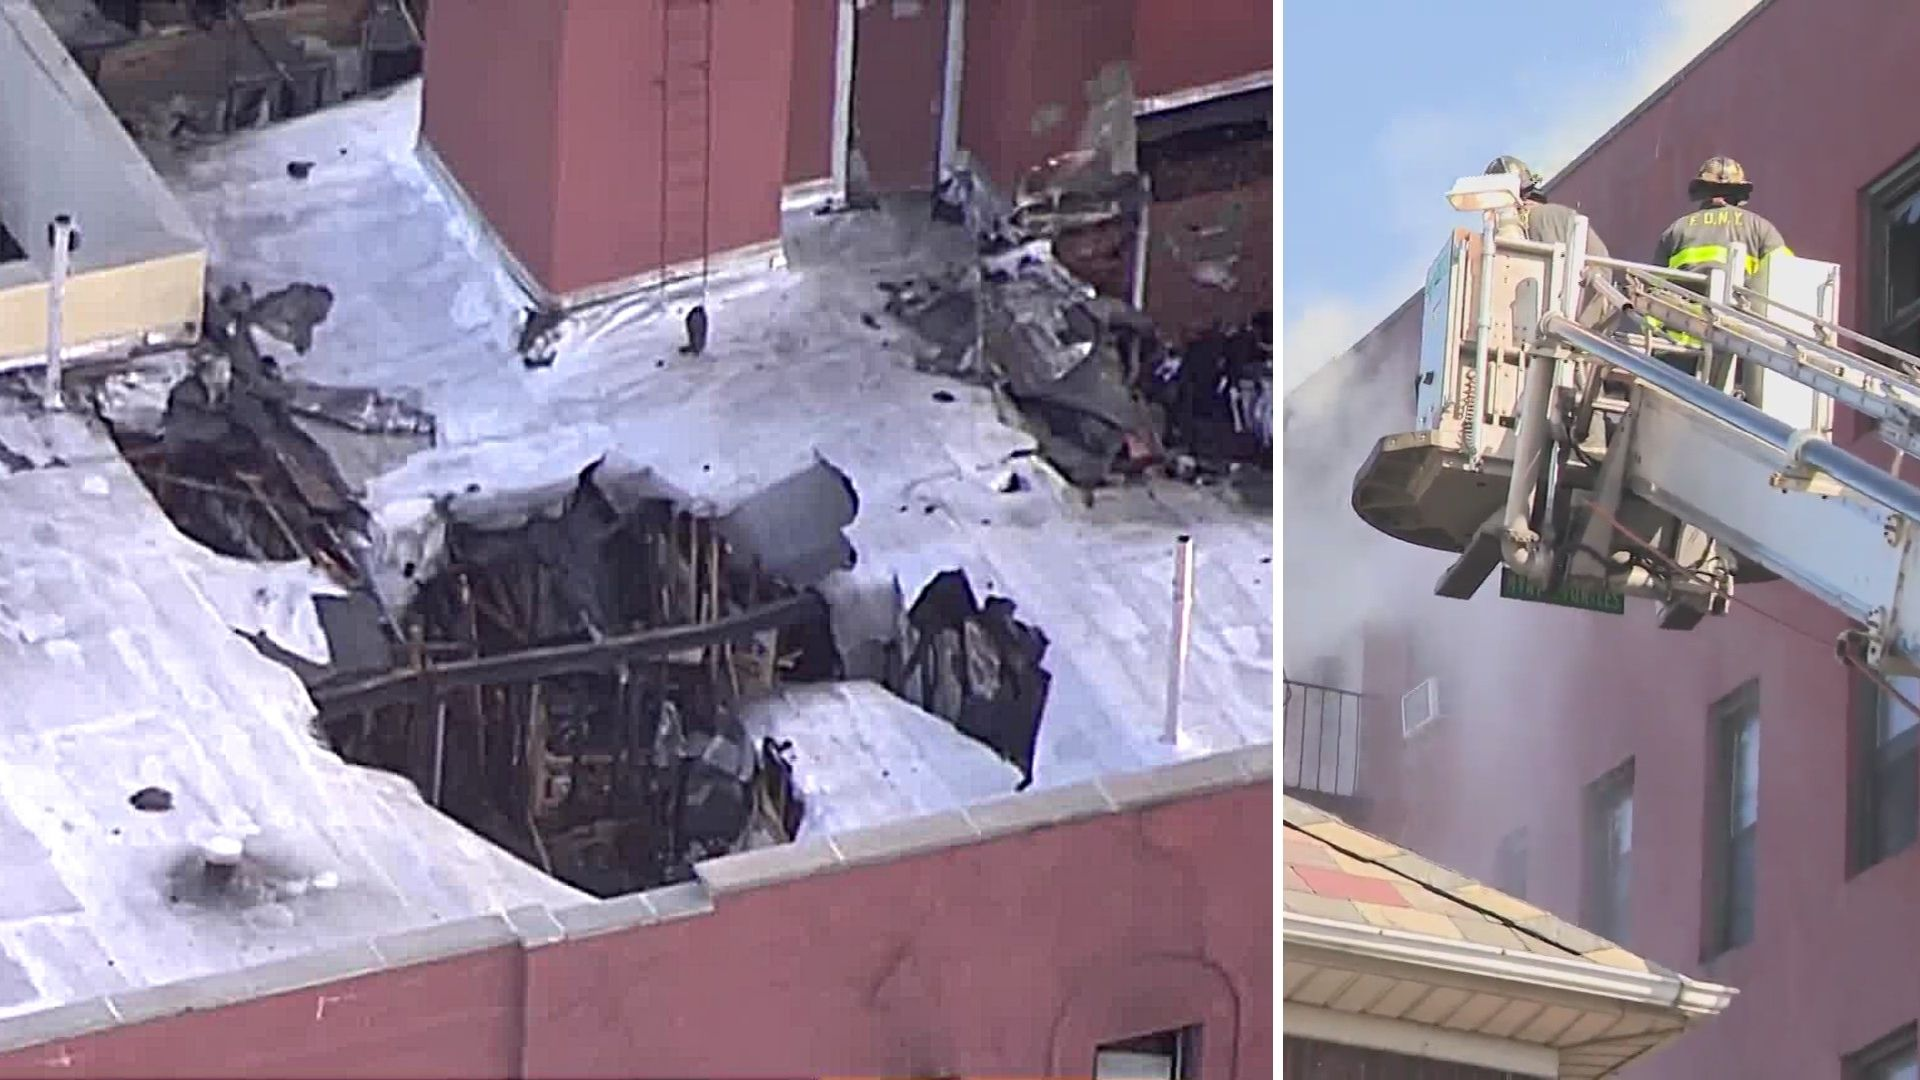 Scenes after a massive fire broke out in an apartment building in Jackson Heights, Queens on April 6, 2021. (AIR11 / PIX11 News)